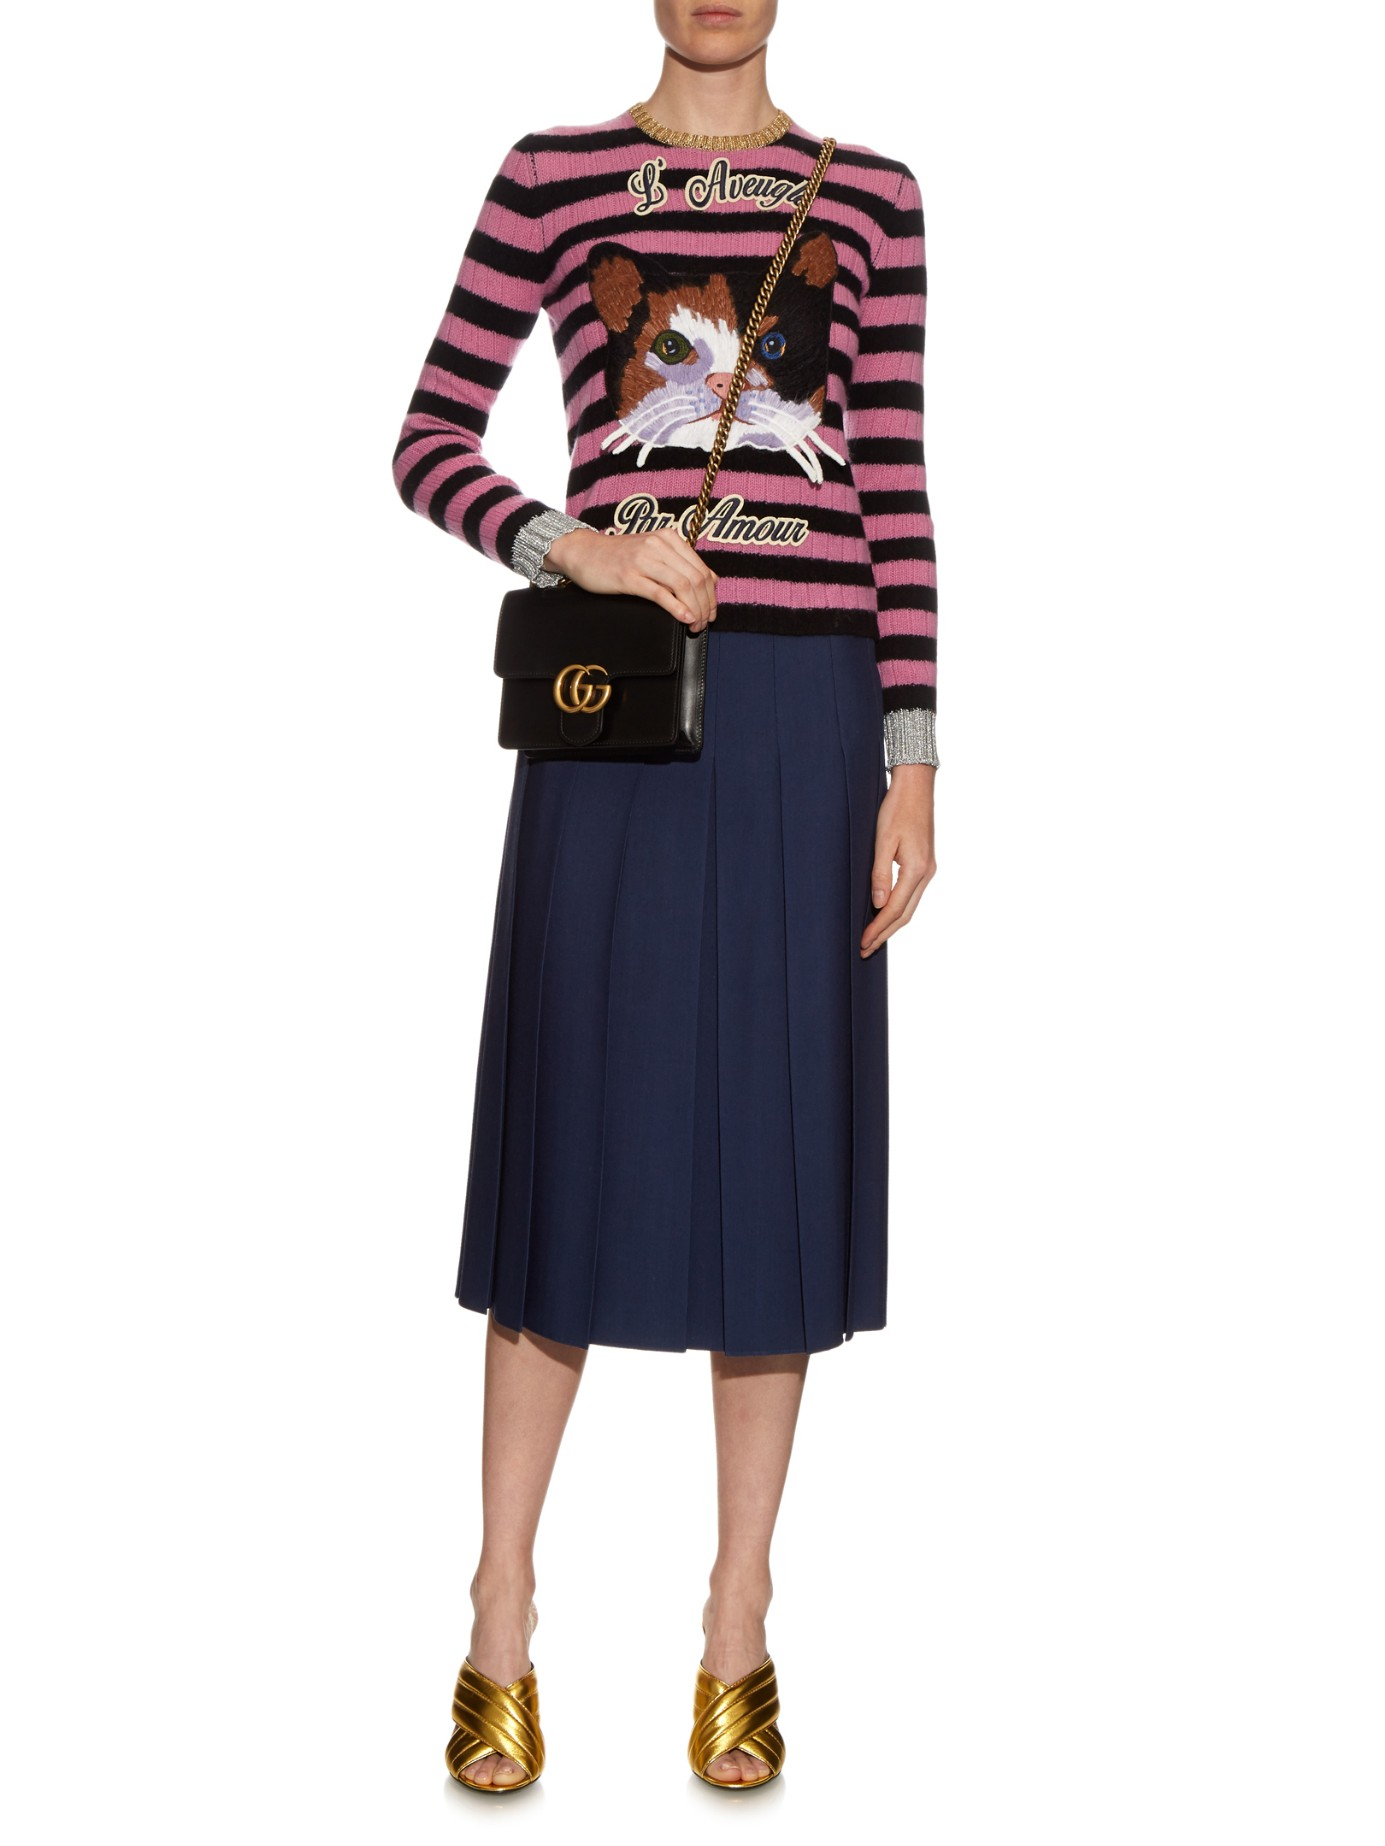 Lyst - Gucci Gg Marmont Leather Cross-body Bag in Black 6a6a3d051c05f